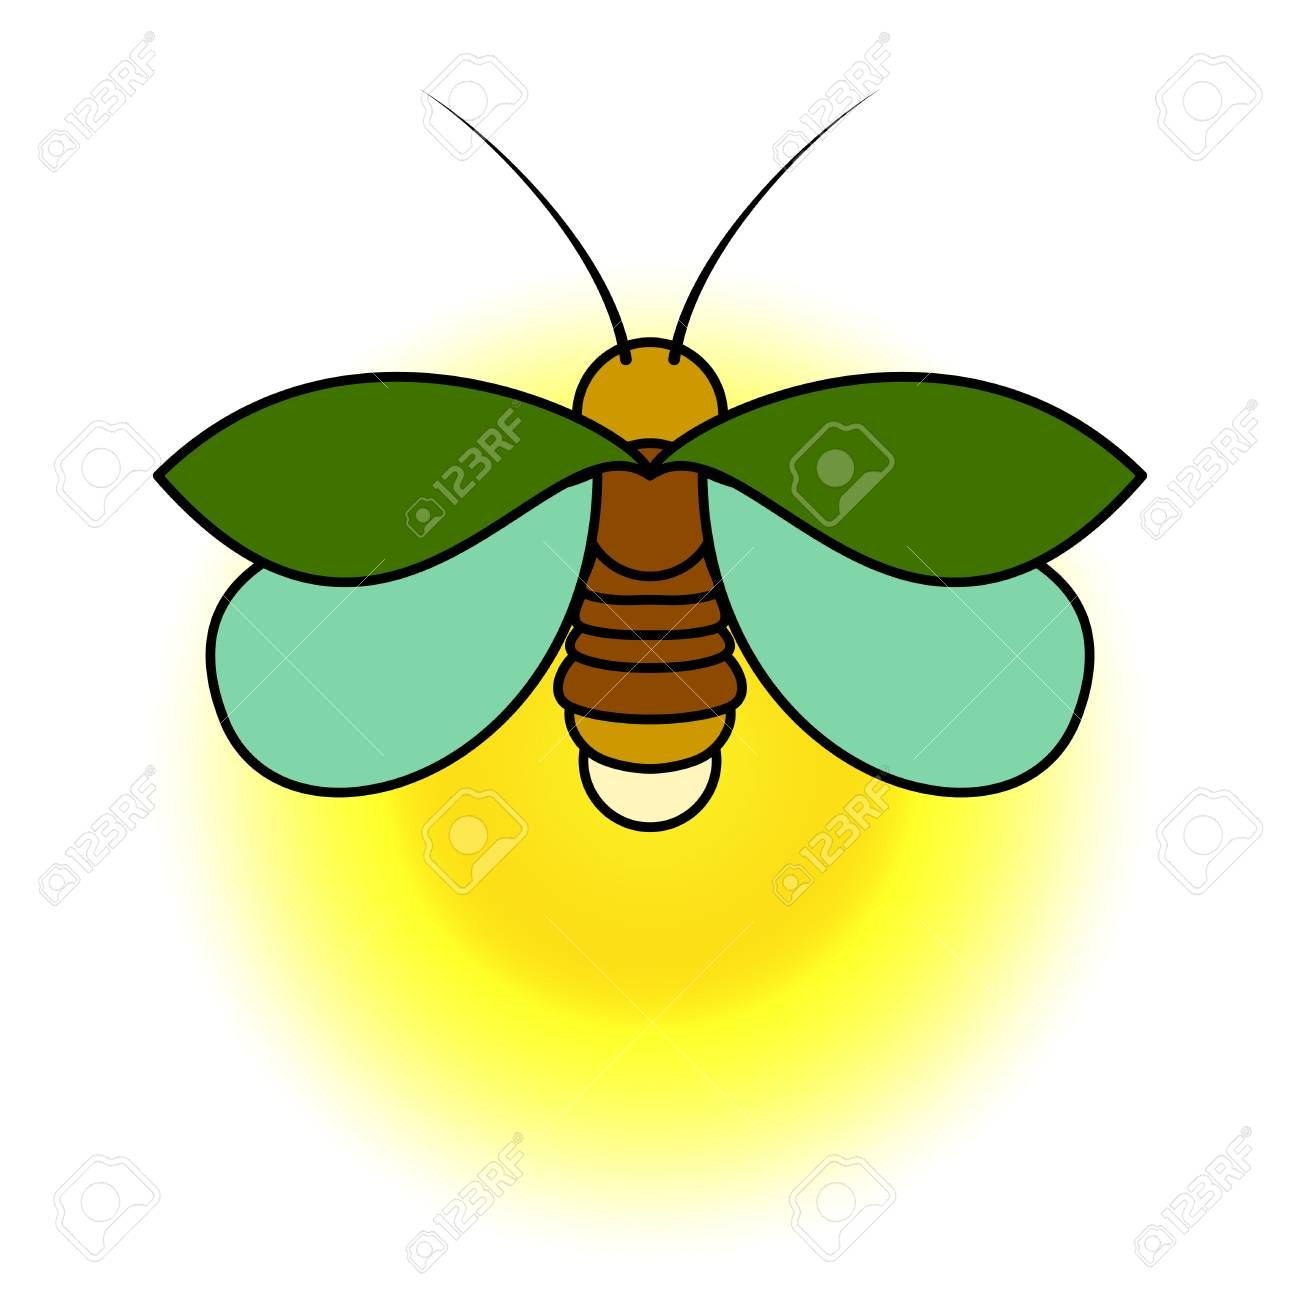 Stock art drawing drawings. Firefly clipart vector